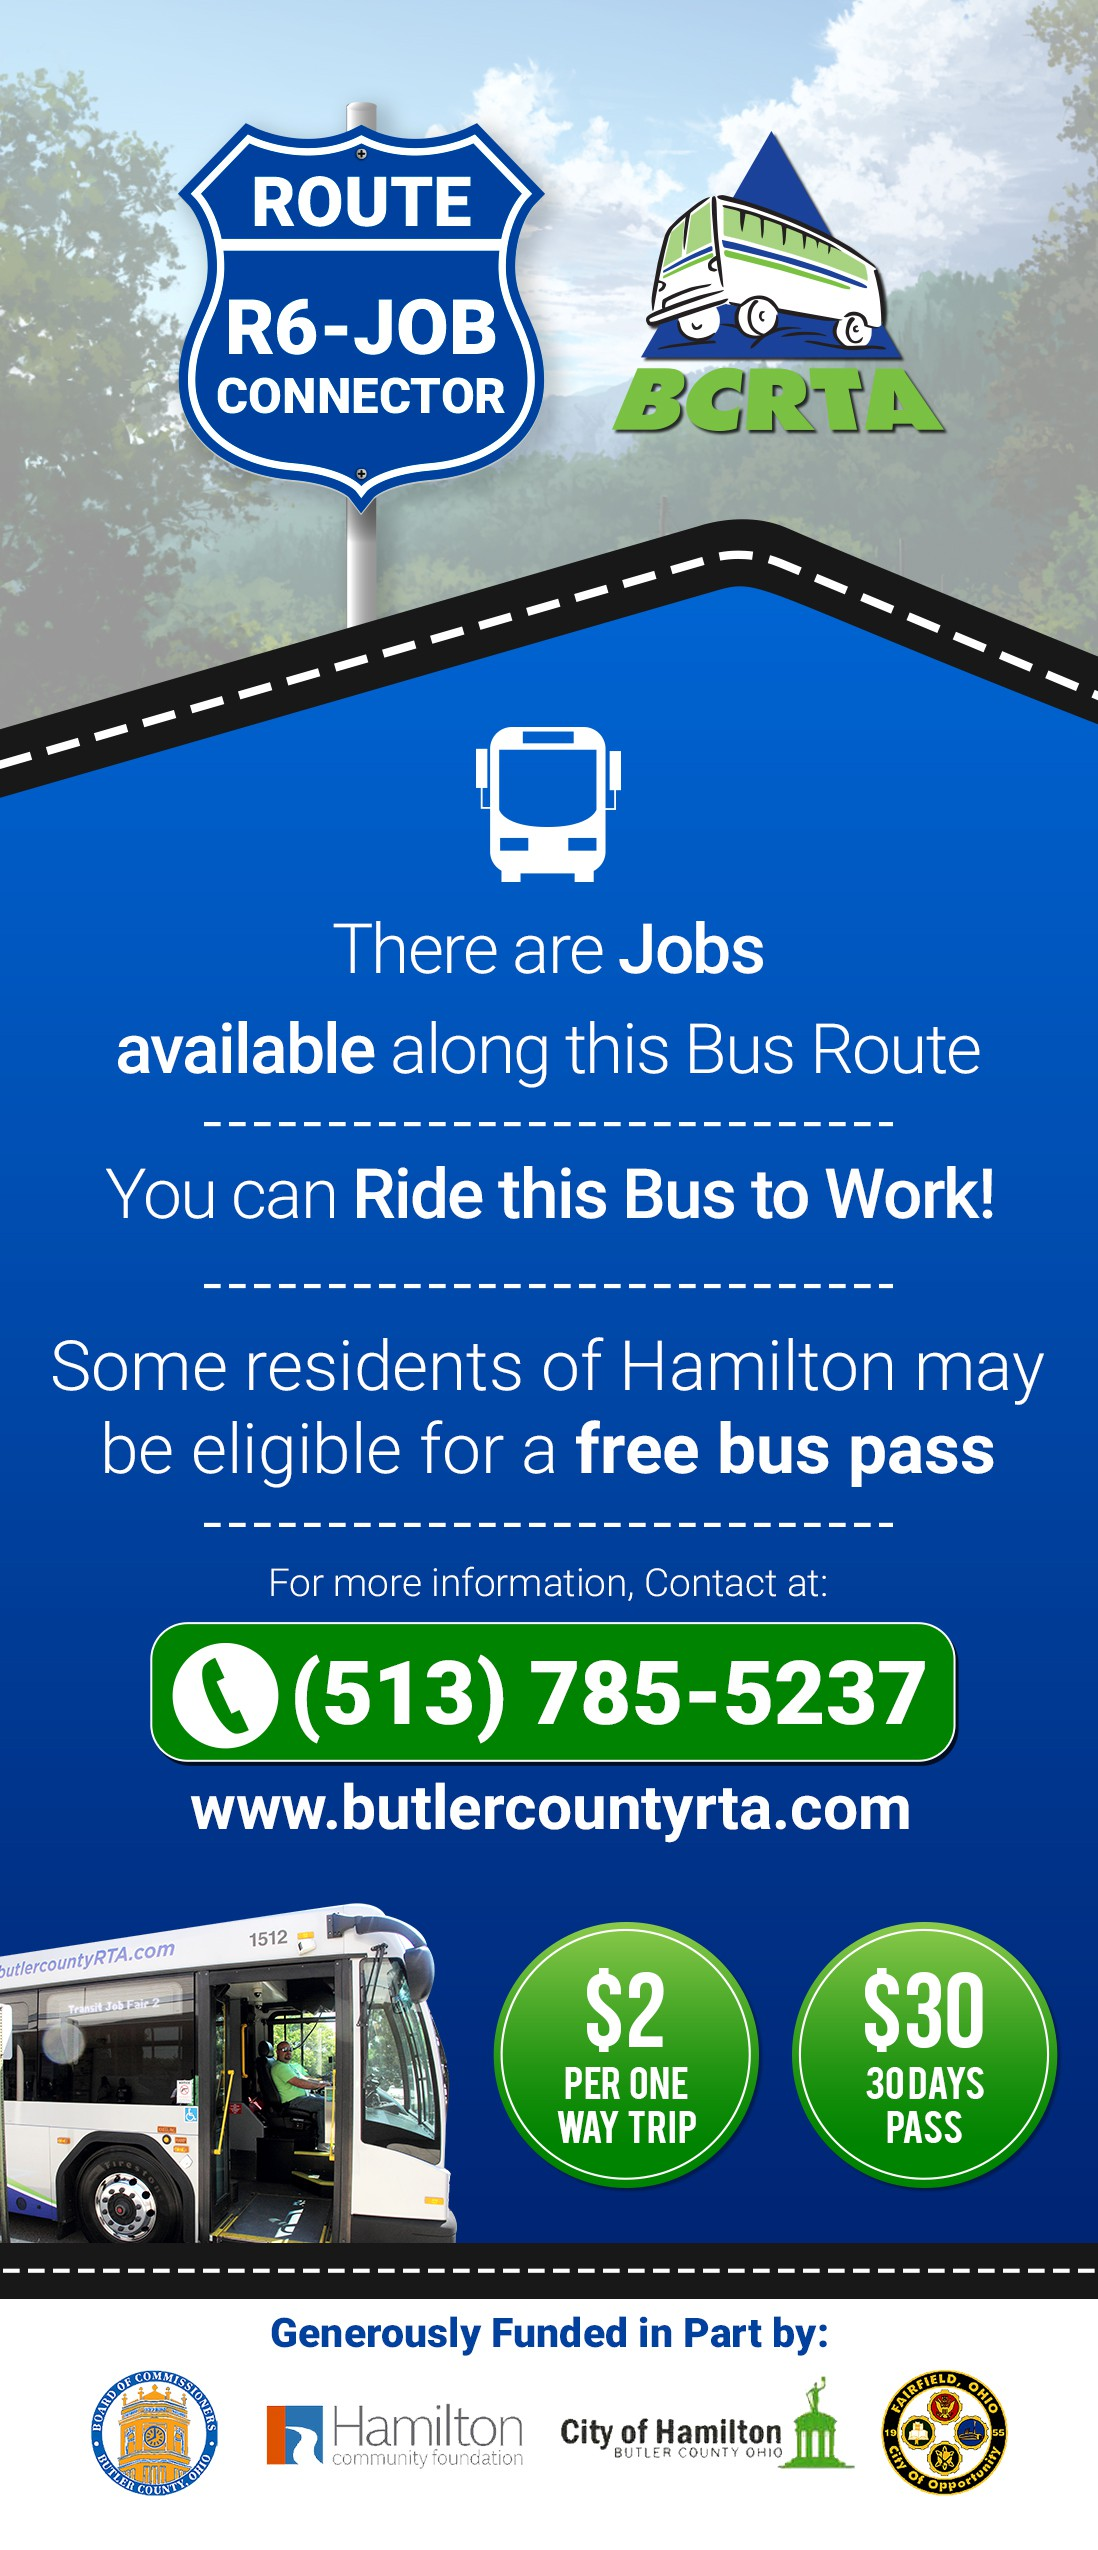 create a catchy bus flyer design for 10,000 recipients